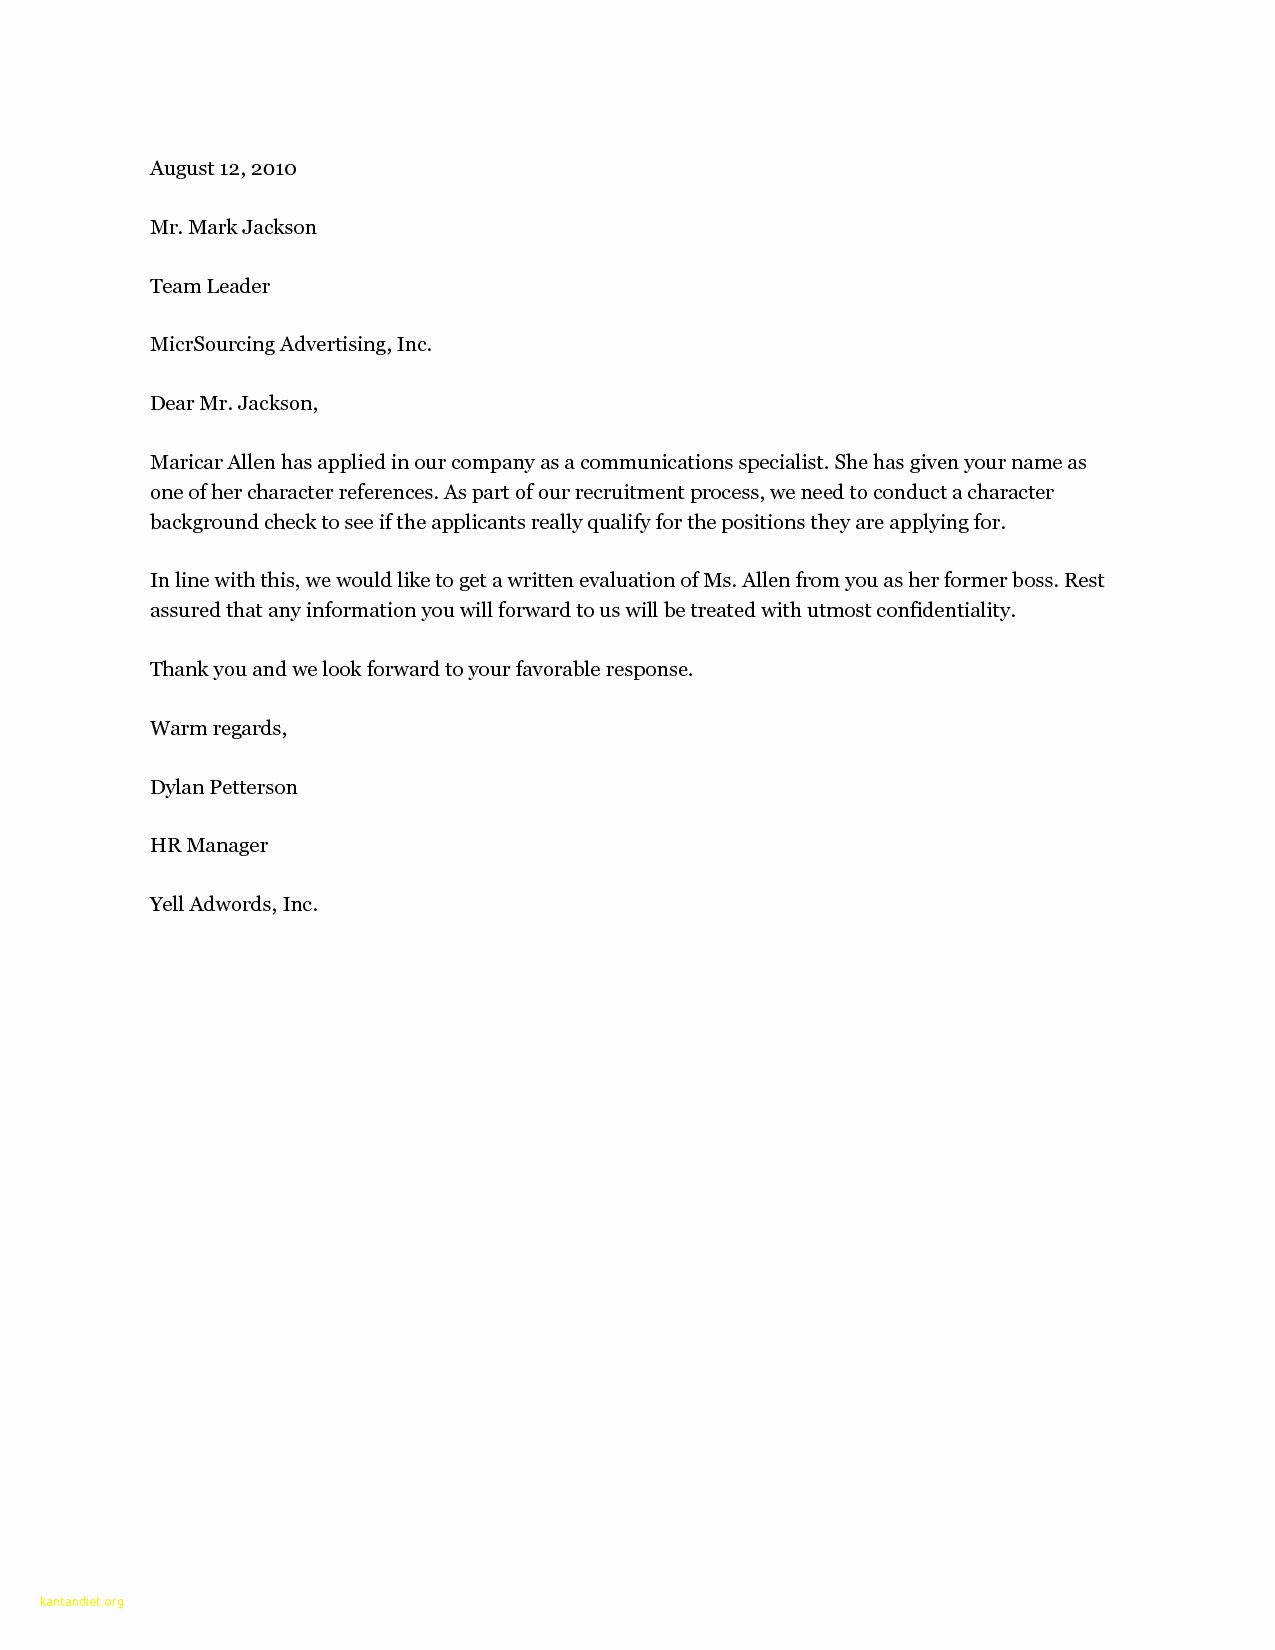 Reference Letter Template Word - 50 Fresh Cover Letter Template Word Doc